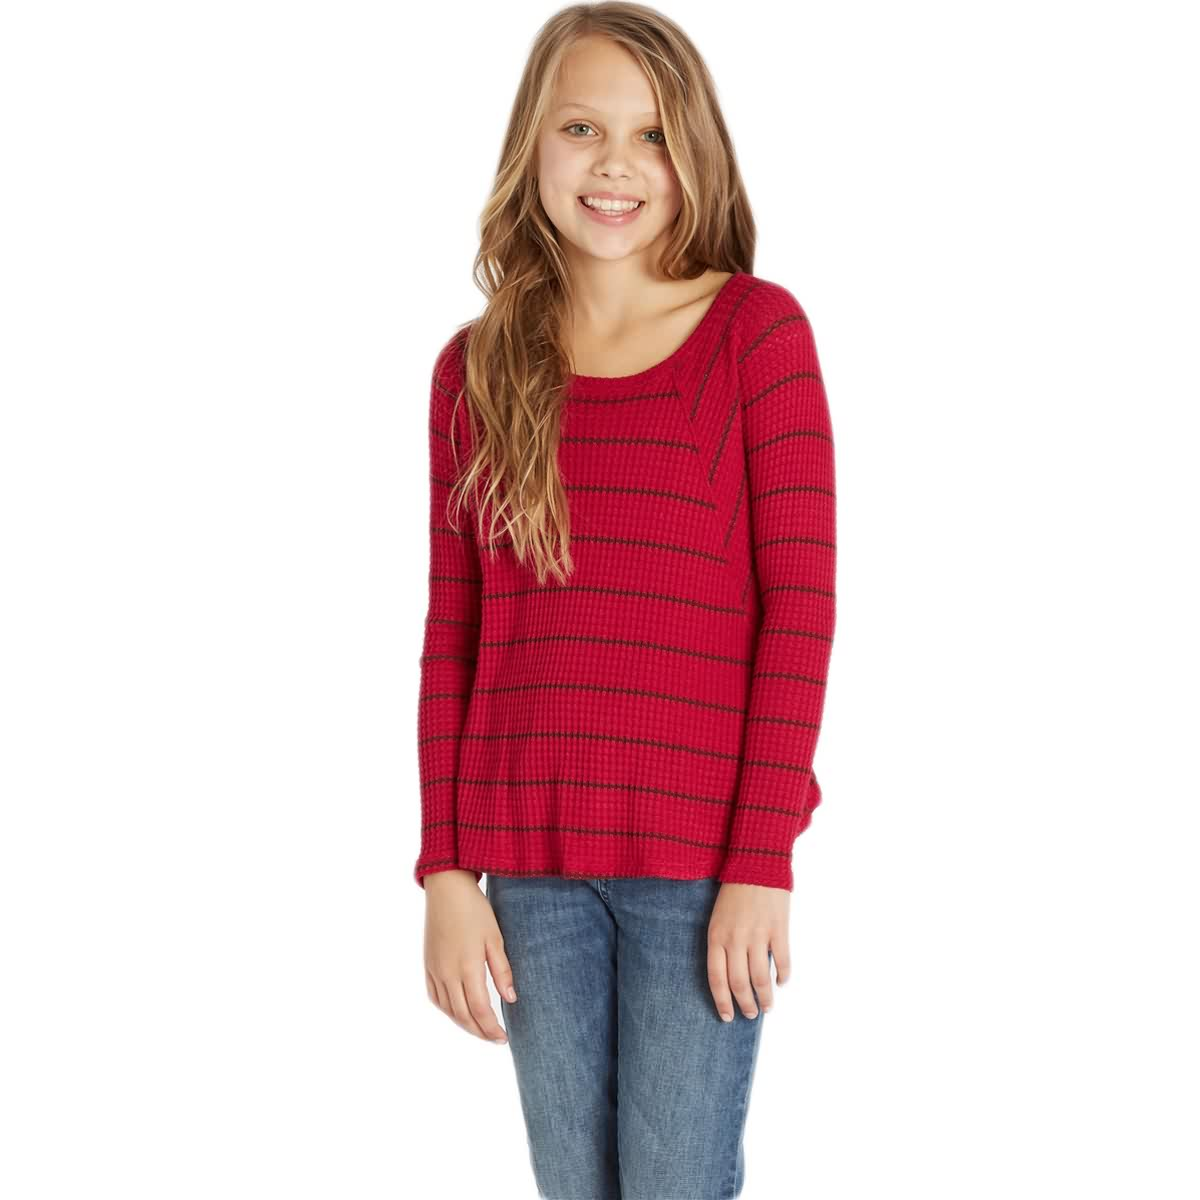 Billabong Roaming Free Youth Girls Long-Sleeve Shirts-G905HROA